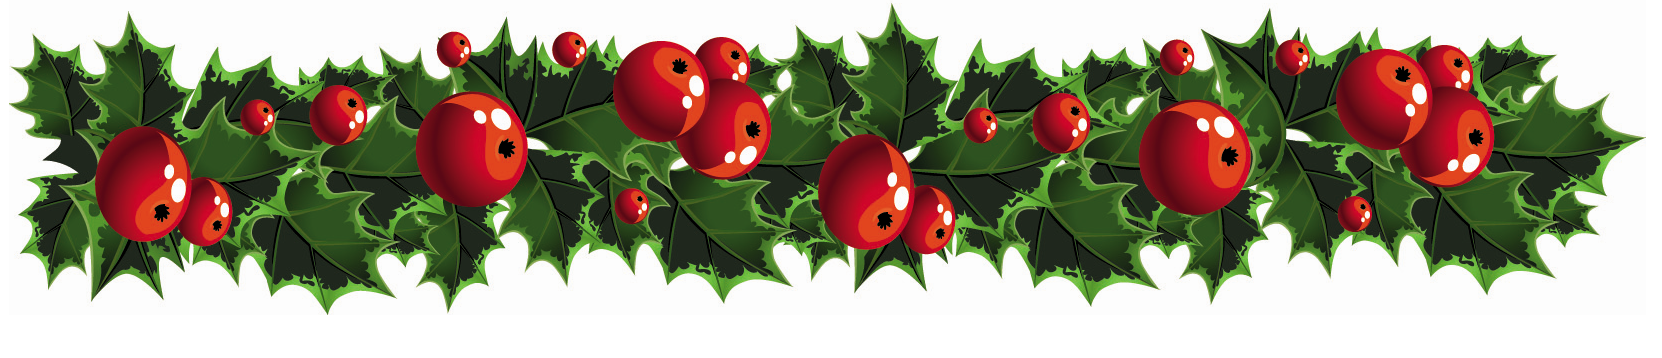 Holly berry large border clip art.